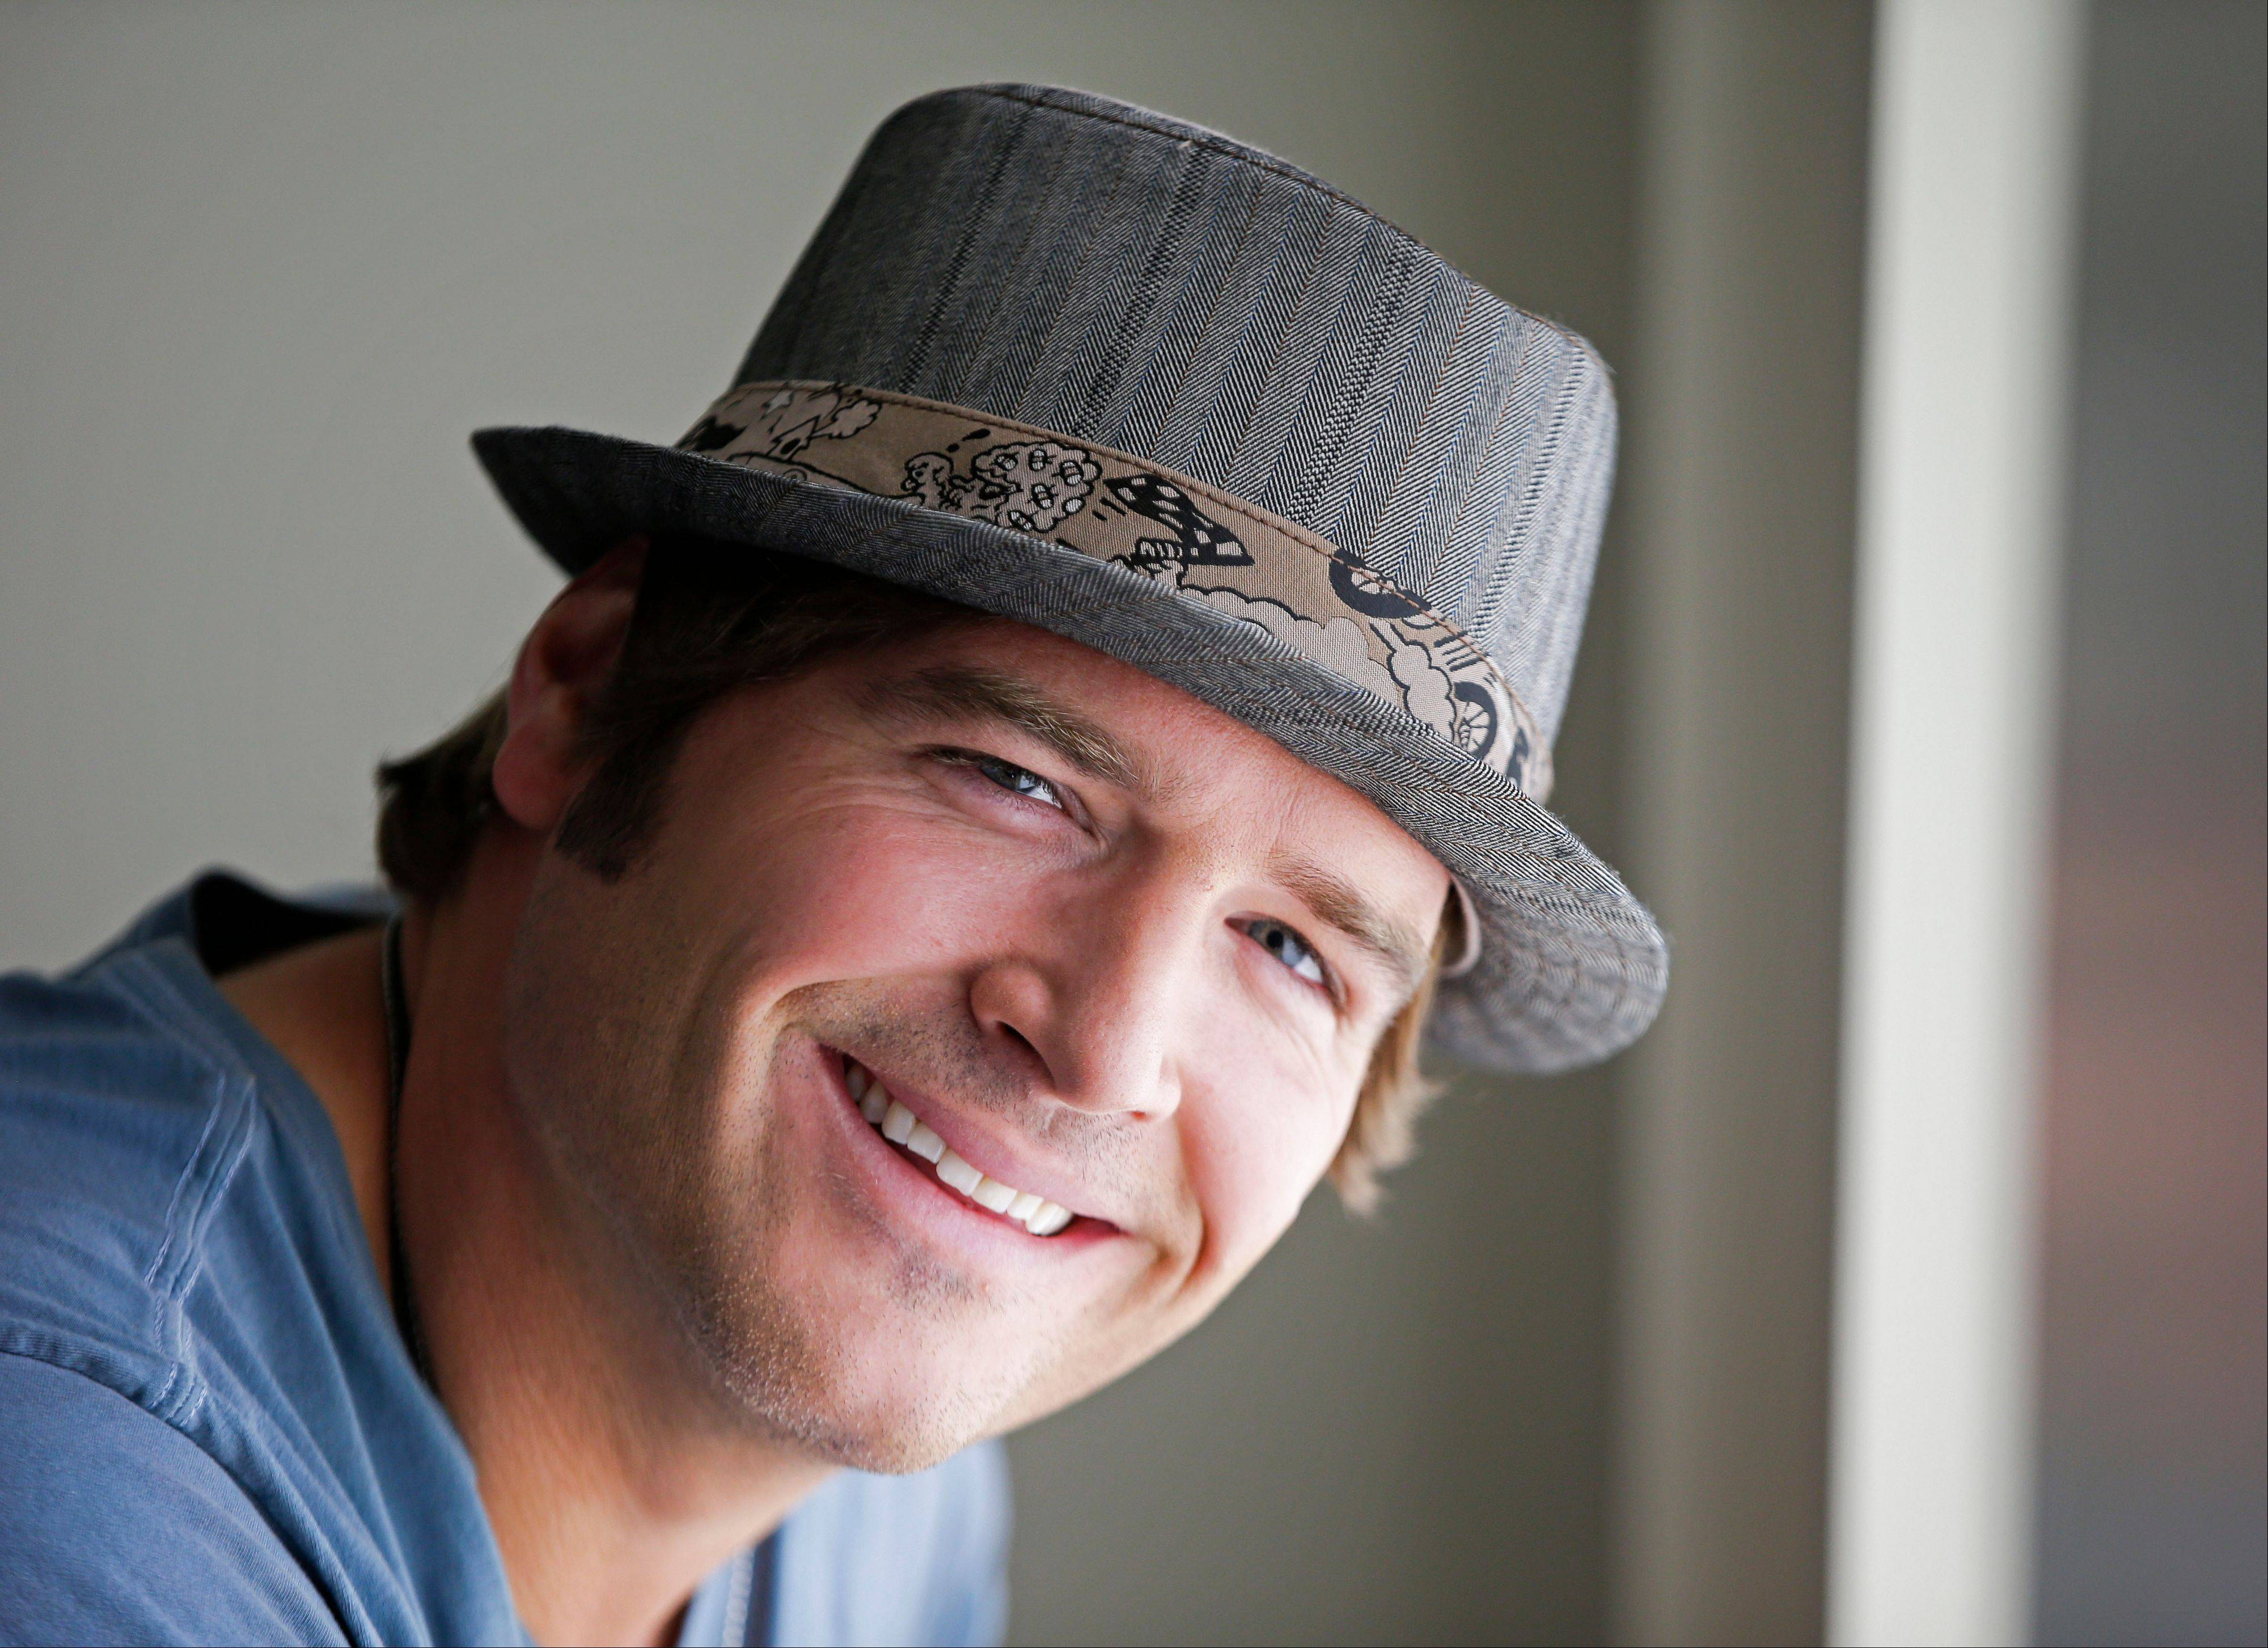 Country music artist Jerrod Niemann will be the headline performer Friday, Aug. 30, during the Naperville Jaycees Last Fling festival in downtown Naperville.